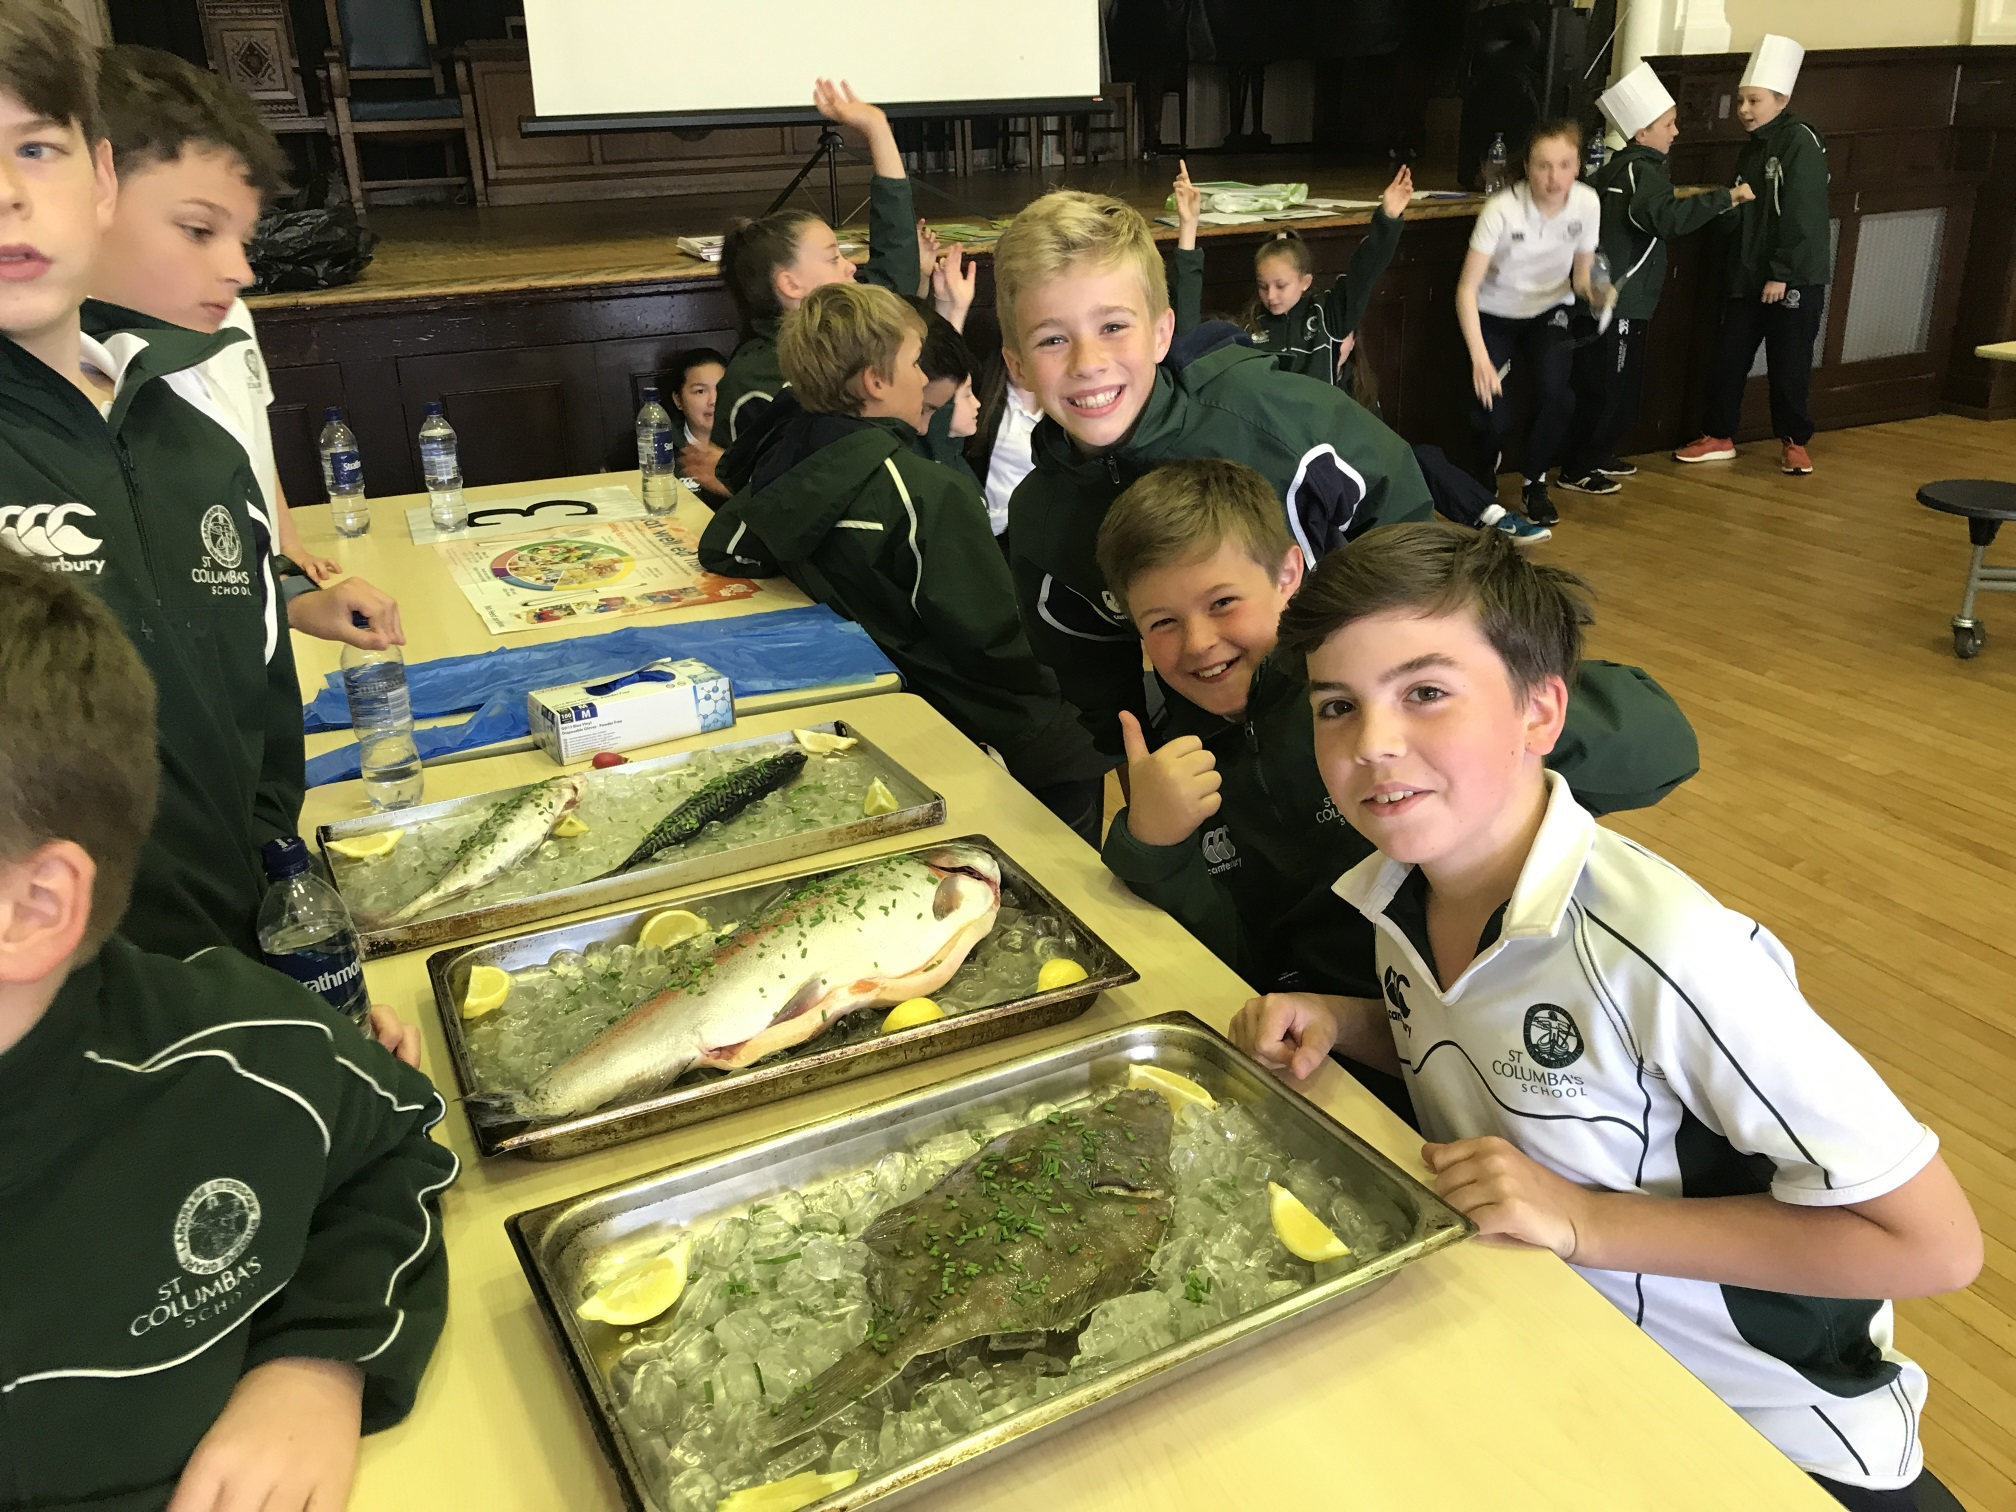 St Columba's Healthy Living